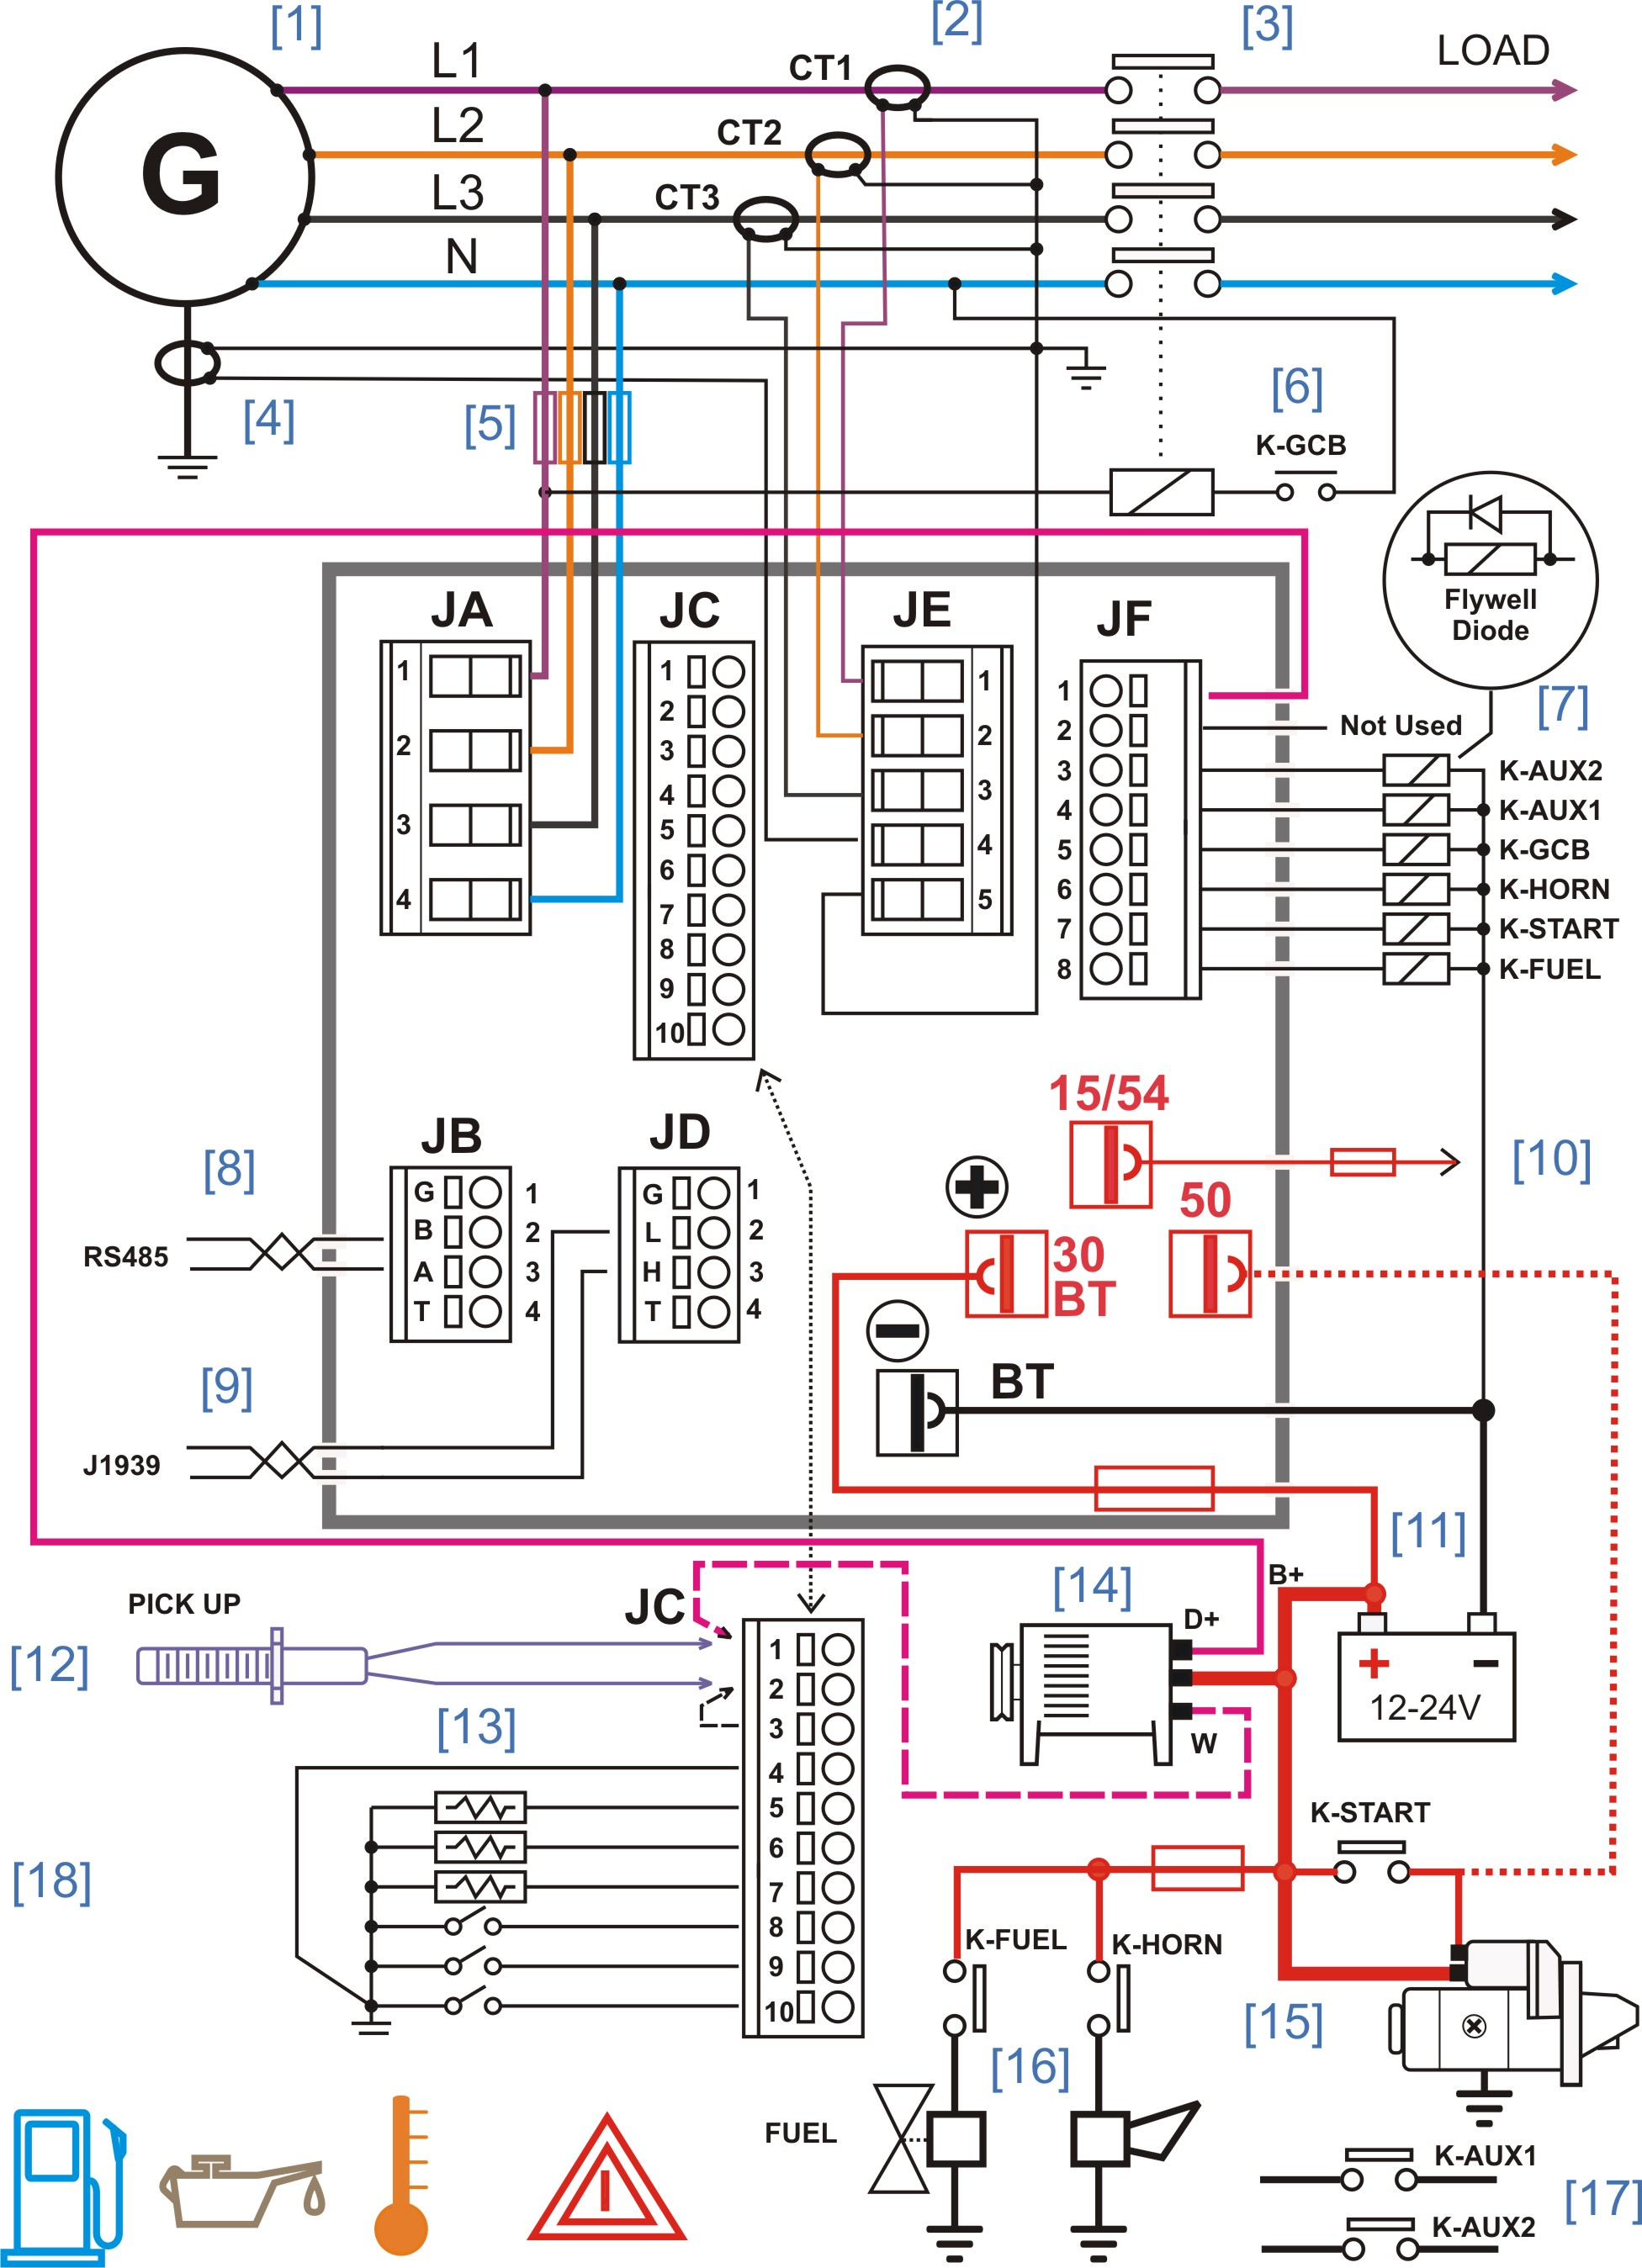 Channel Bank Wiring Diagram | Repair Manual on